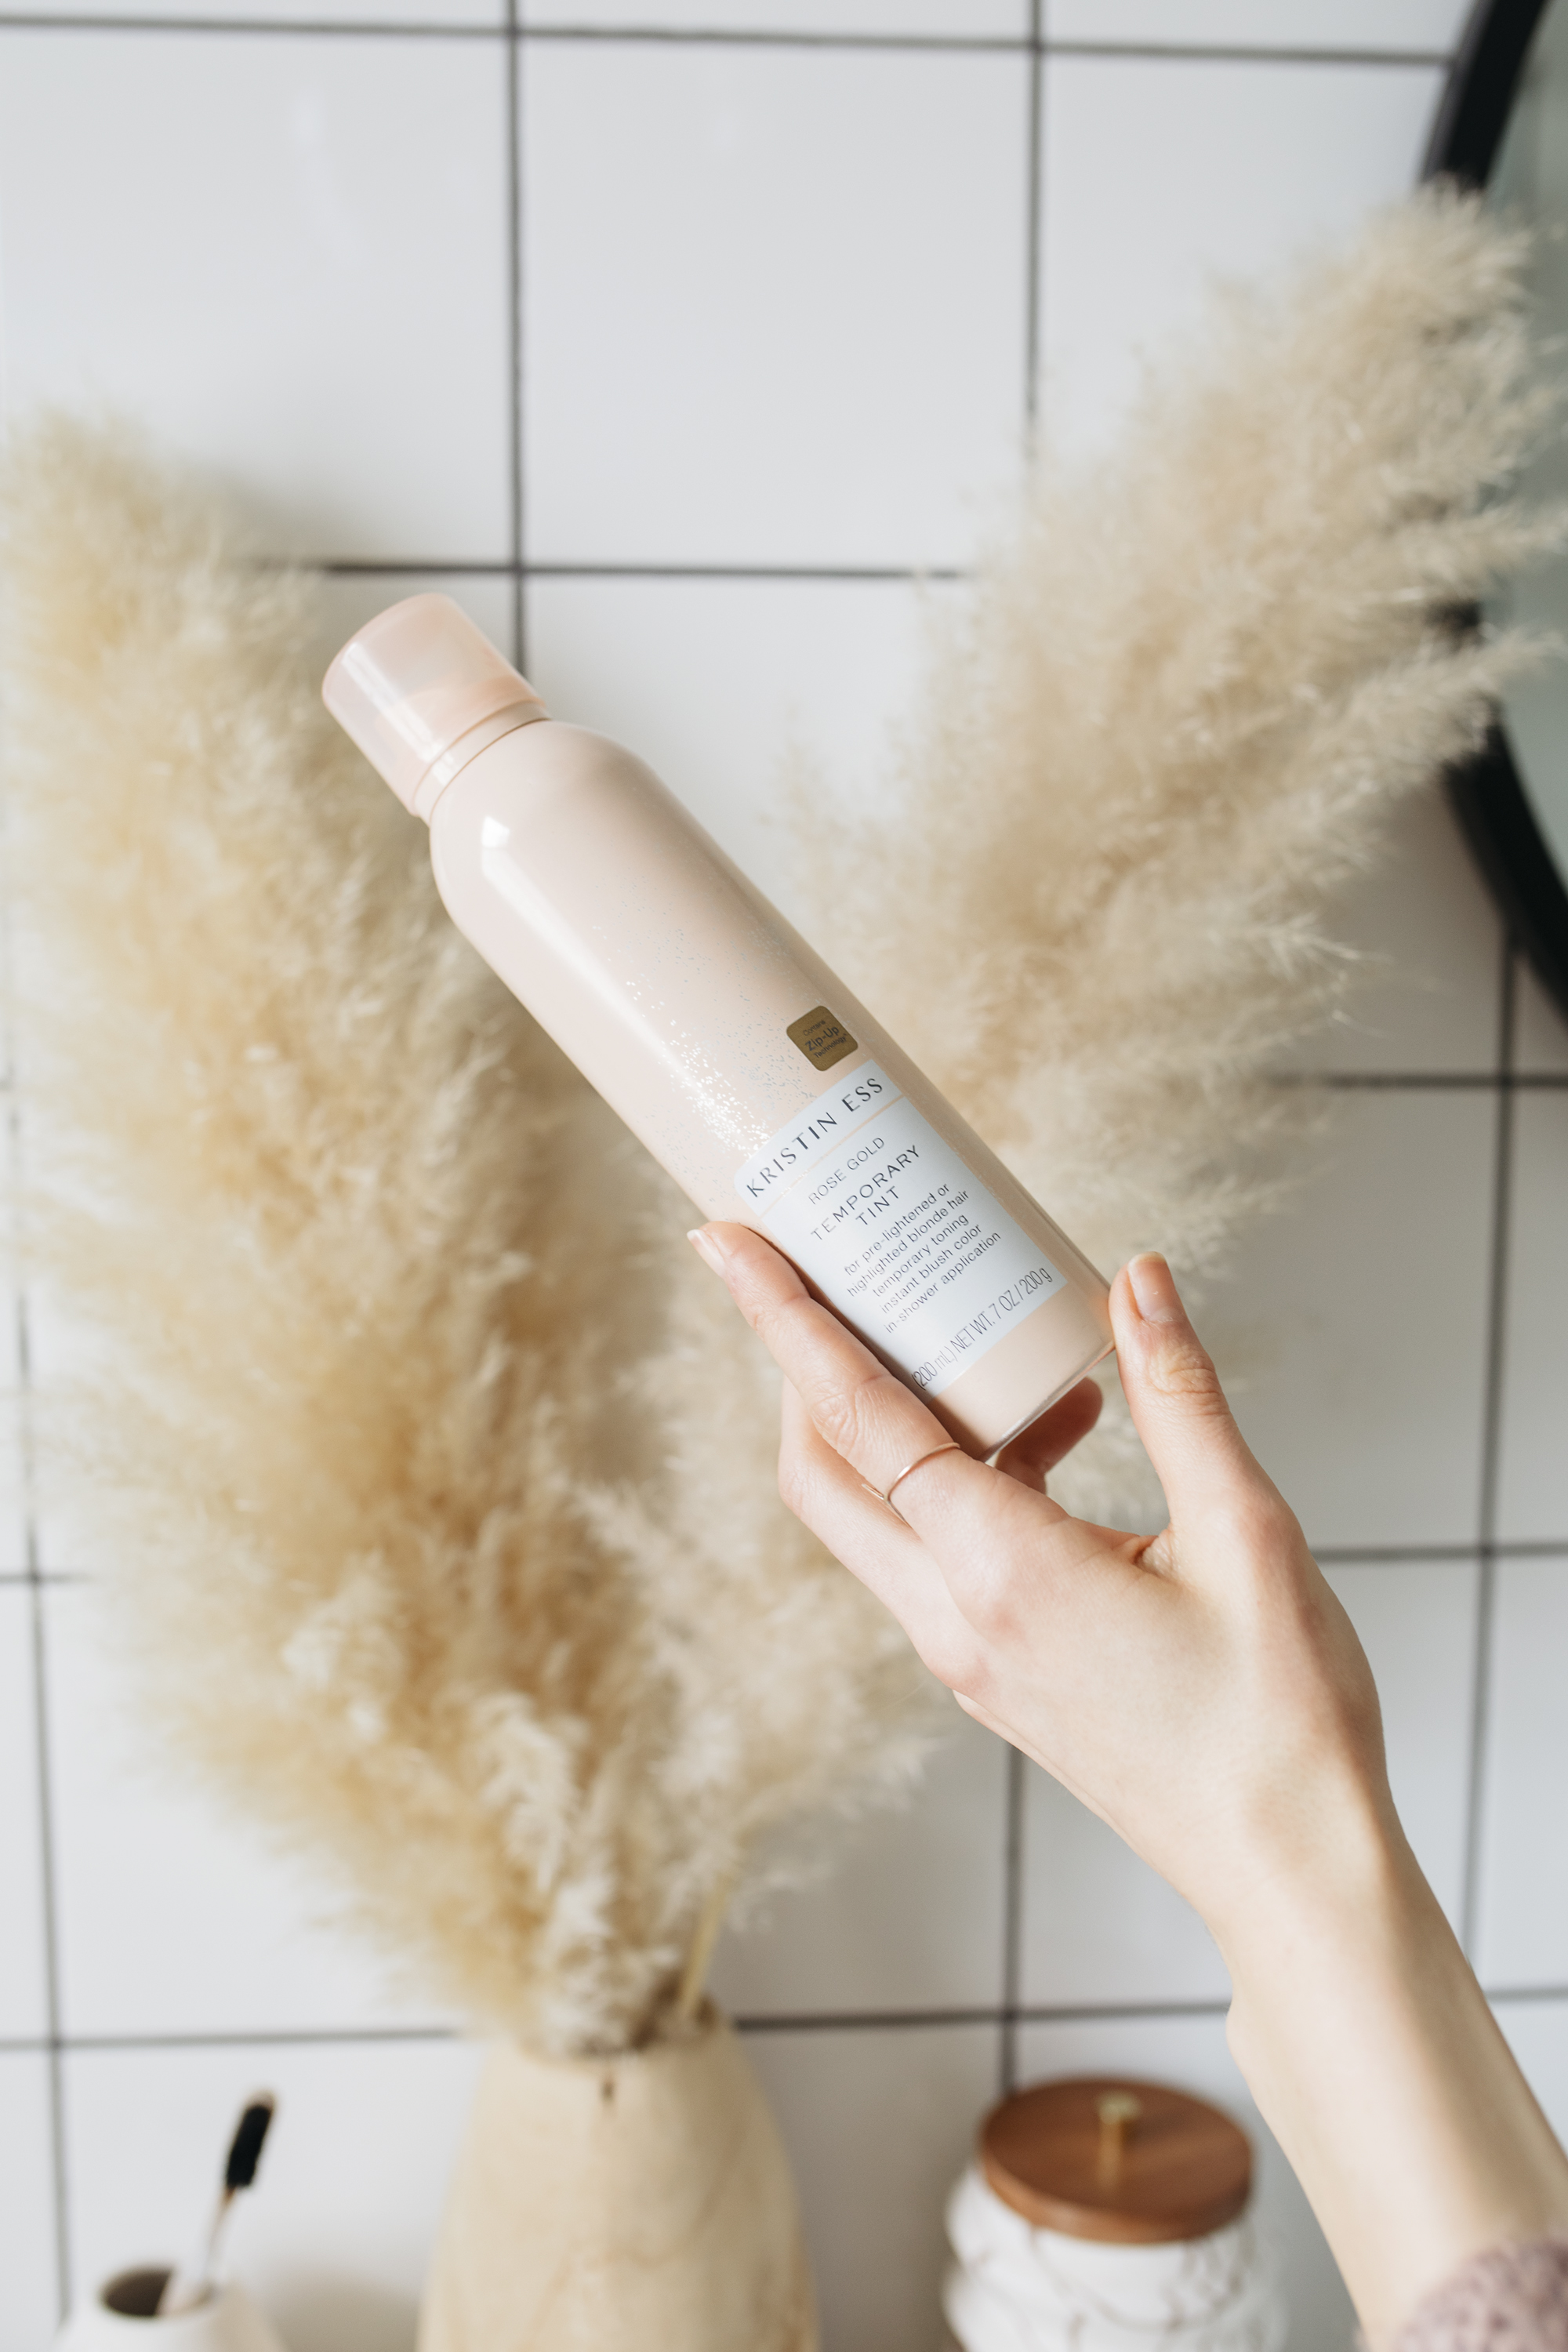 It might be time to try out something new. For me that is rose gold hair. Read on to hear about my hair adventure and recommended hair products